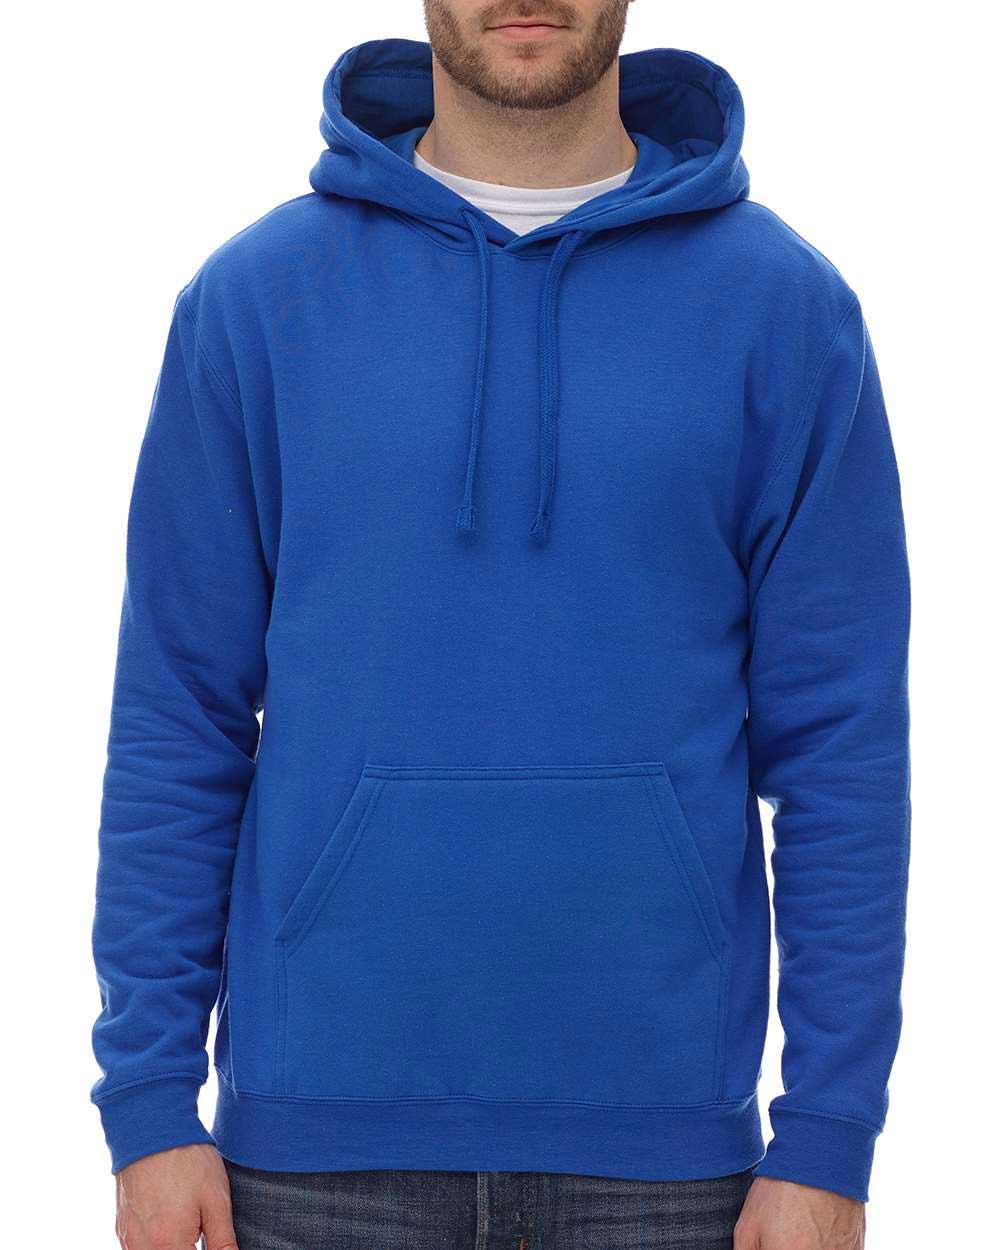 M&O Knits 3320 - Unisex Pullover Hoodie